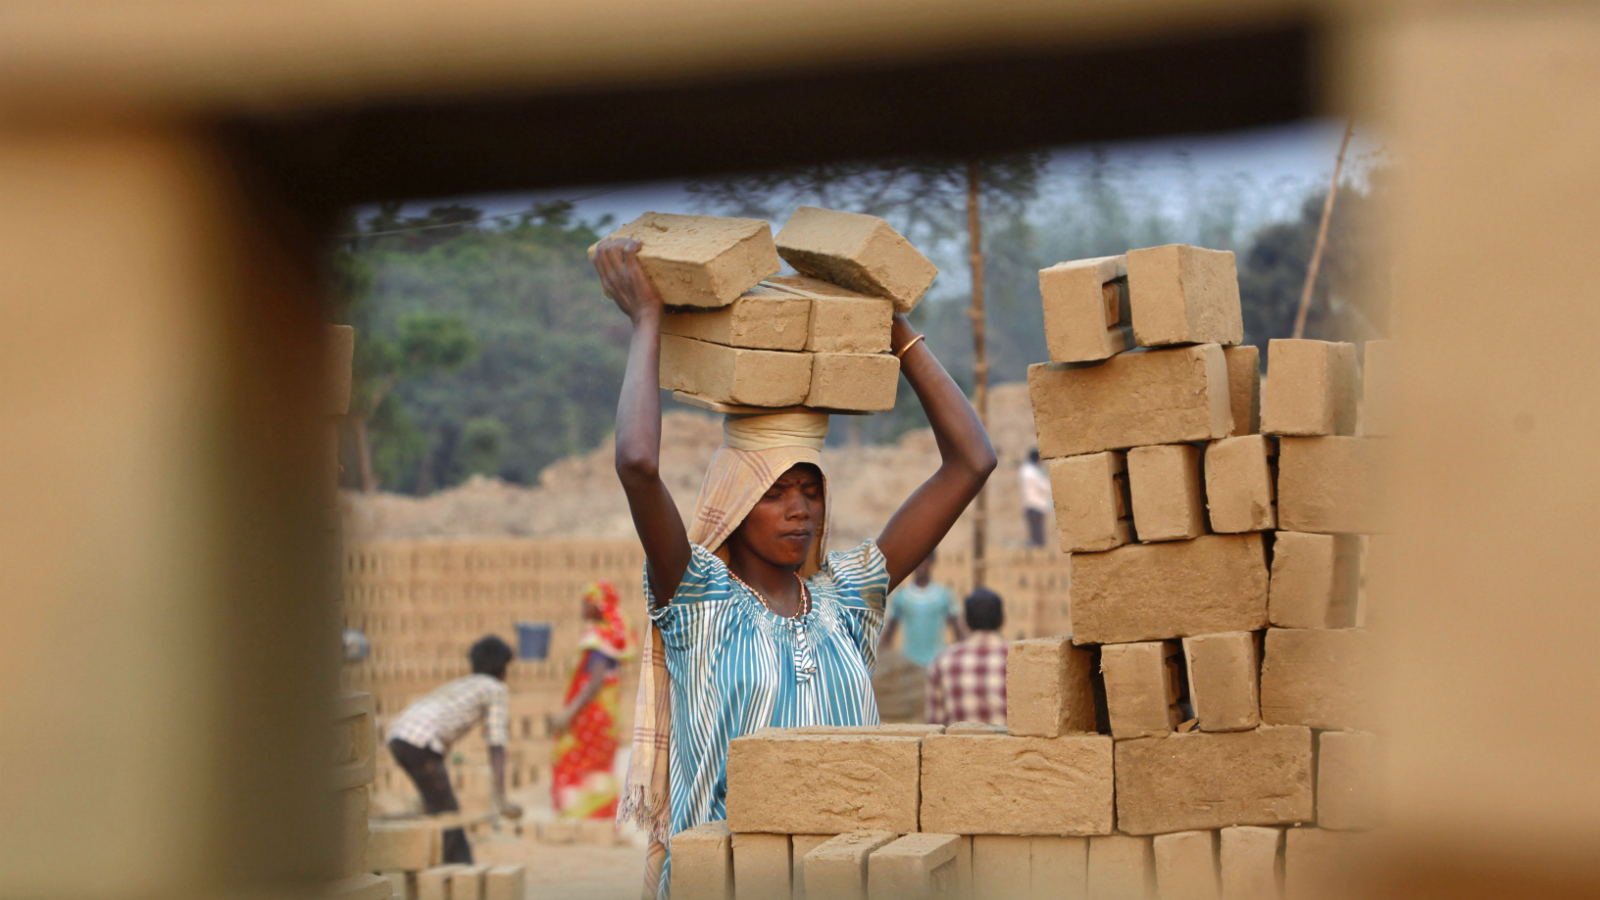 A female labourer carries bricks as she works in a brick factory on International Women's Day on the outskirts of Agartala, capital of India's northeastern state of Tripura March 8, 2013.